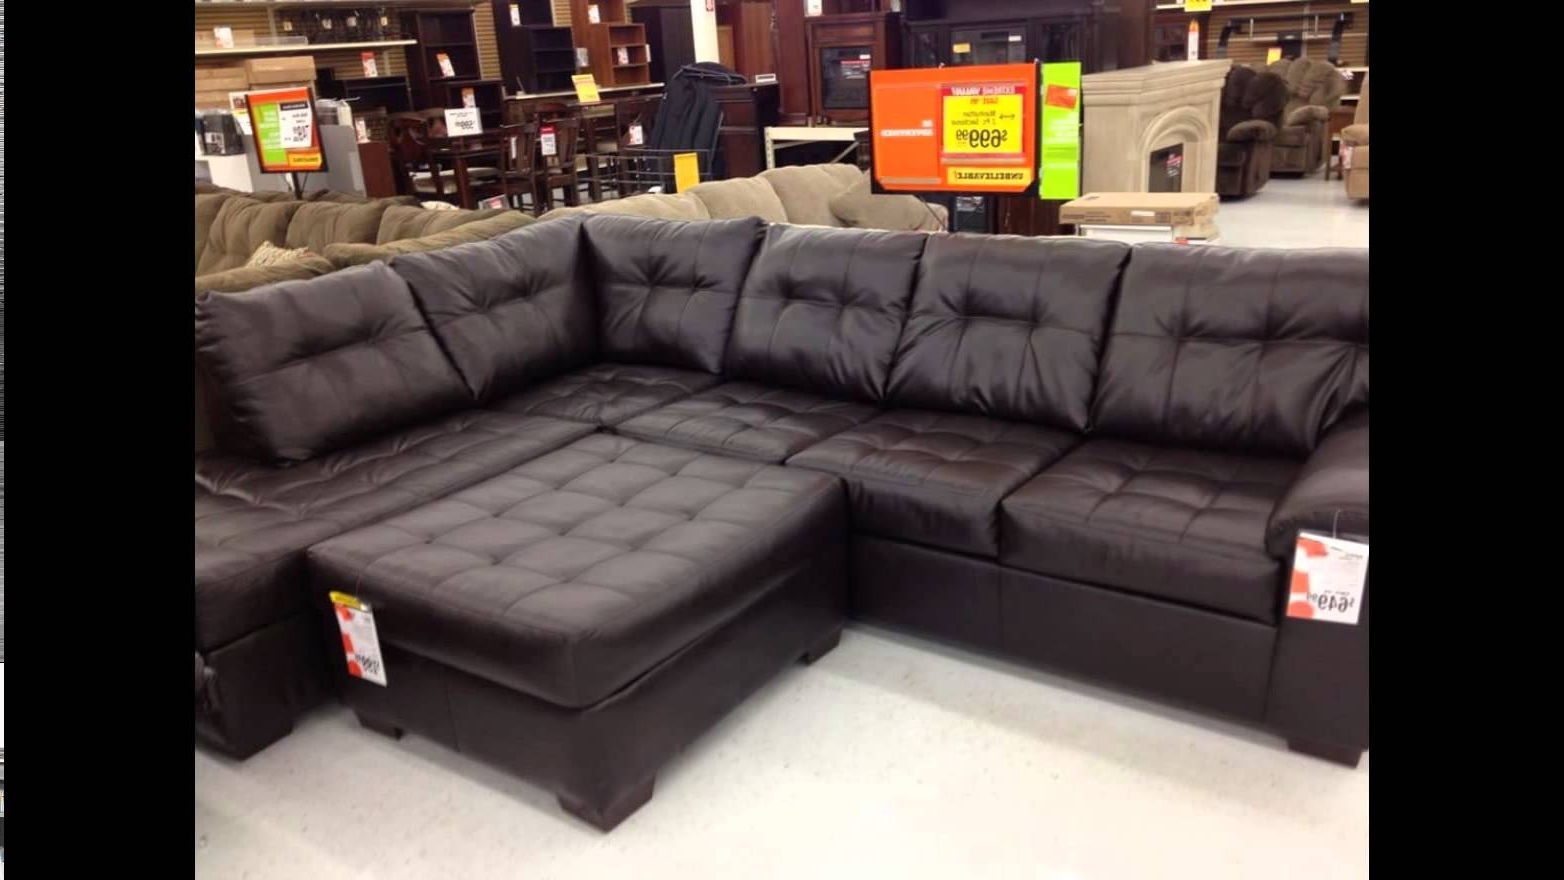 Sectional Sofas At Big Lots Inside Most Up To Date Big Lots Furniture  Big Lots Furniture Sale – Youtube (View 10 of 15)